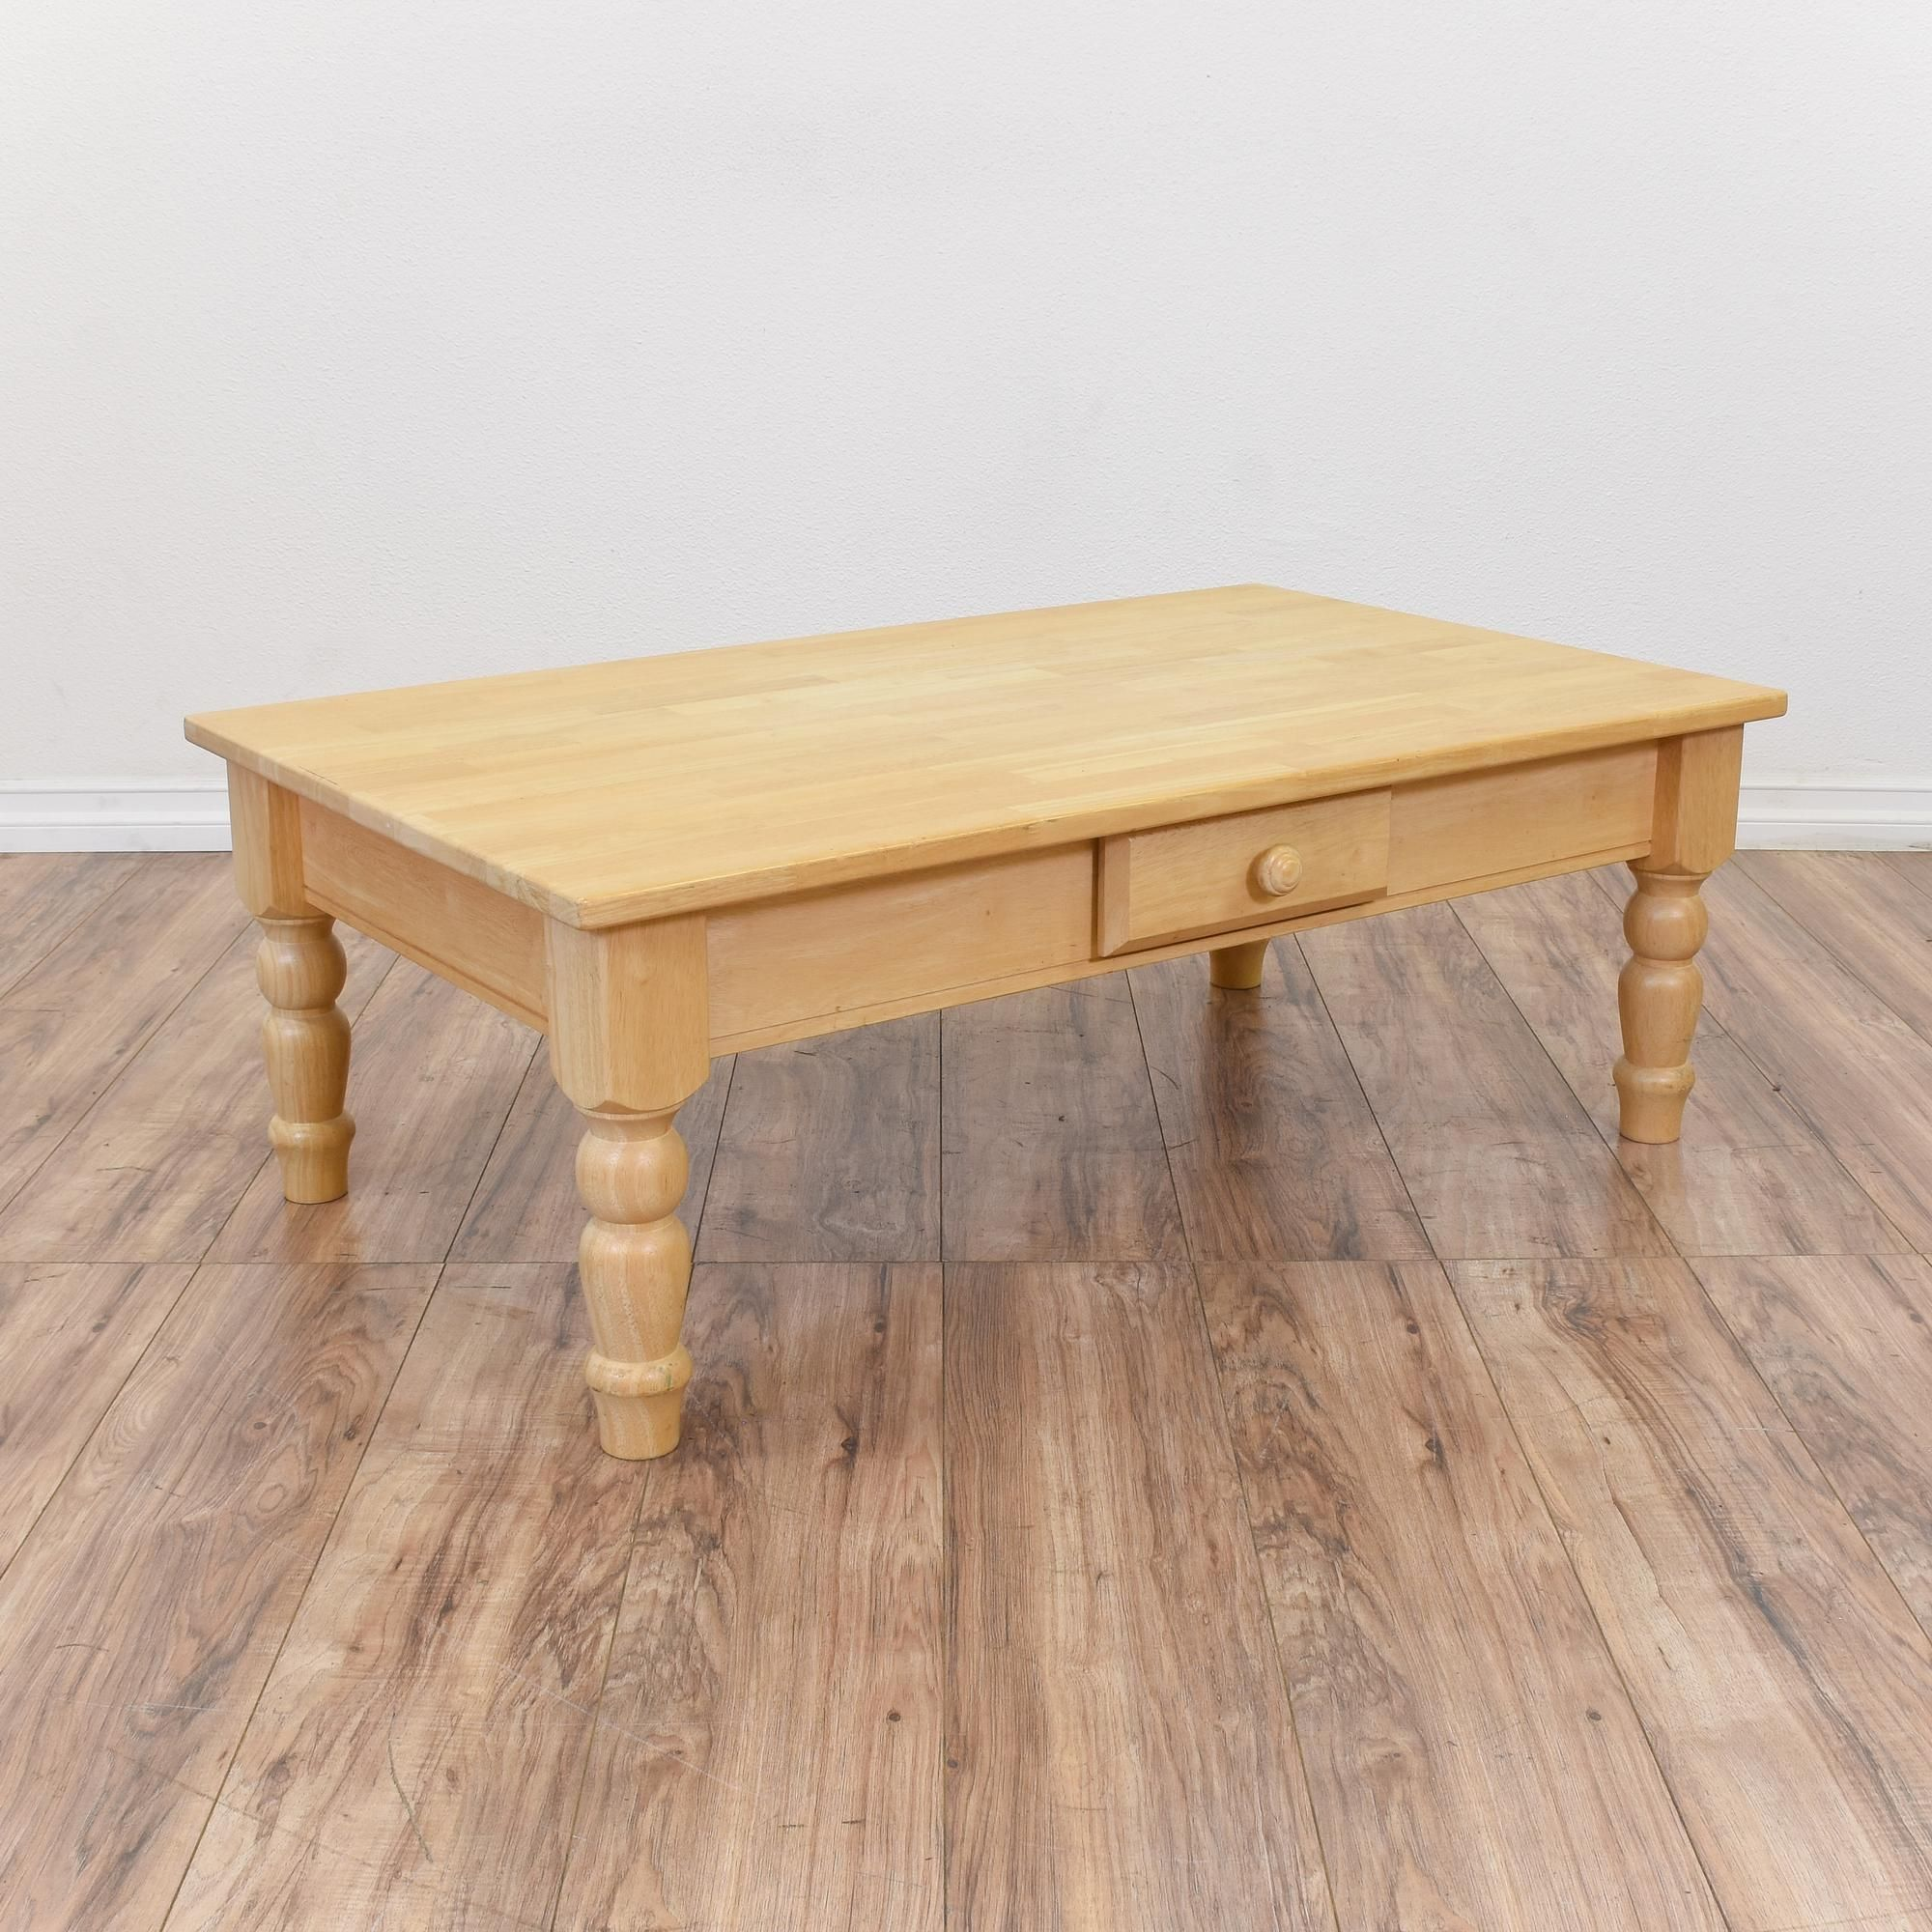 This Large Coffee Table Is Featured In A Solid Wood With A Glossy Light Blonde Wood Finish This Country Chic Coffee Table Is In Great Condit Table Large Coffee Tables Blonde